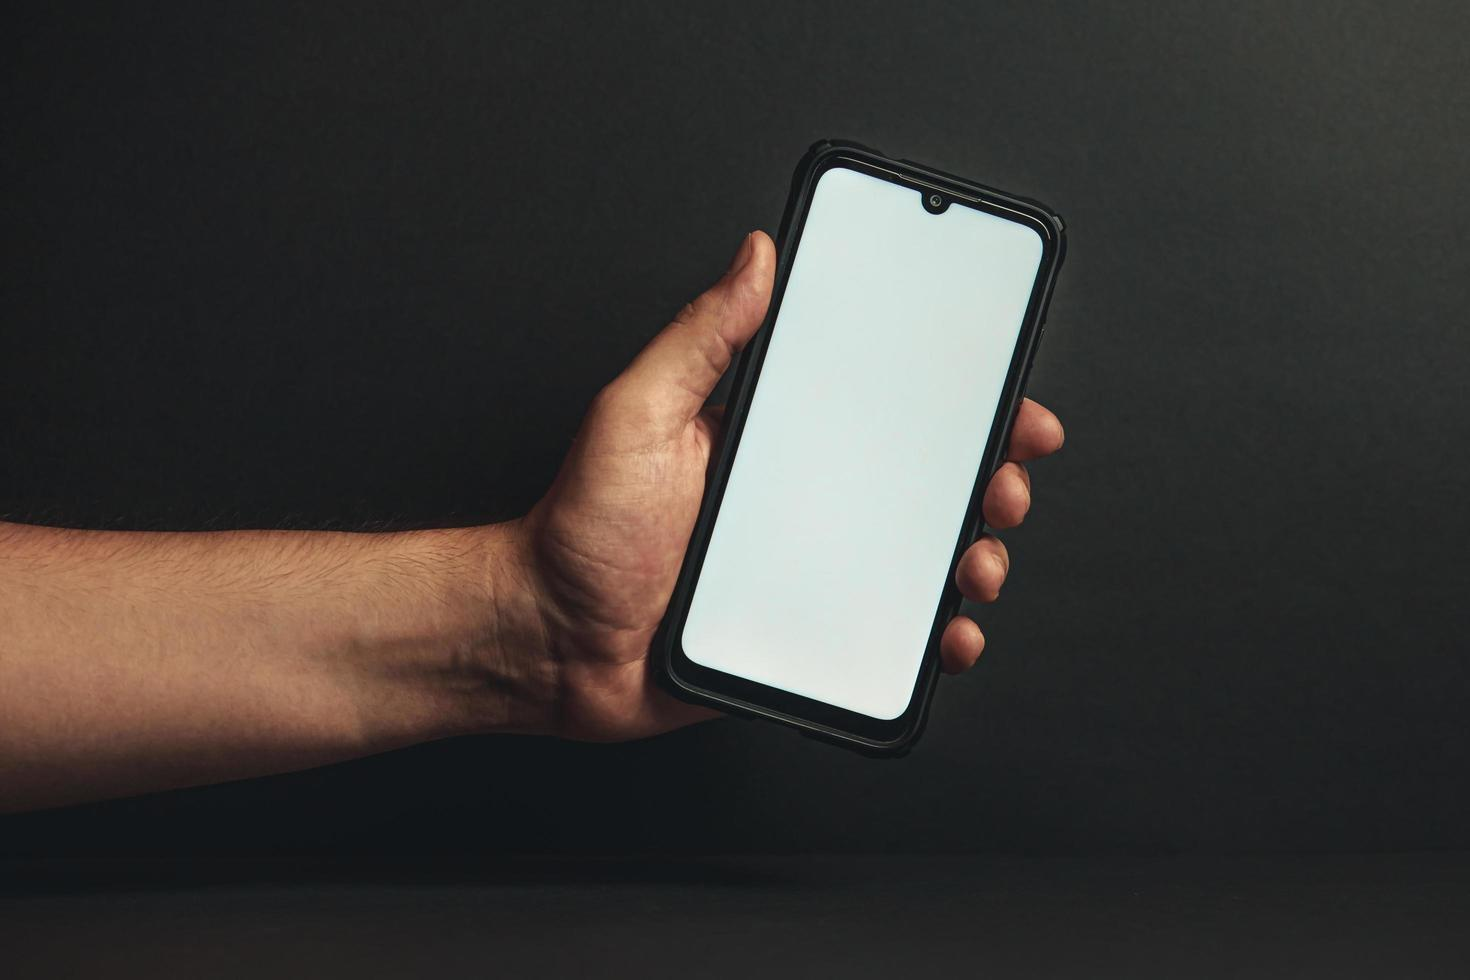 Young hand holding a phone with a white screen photo